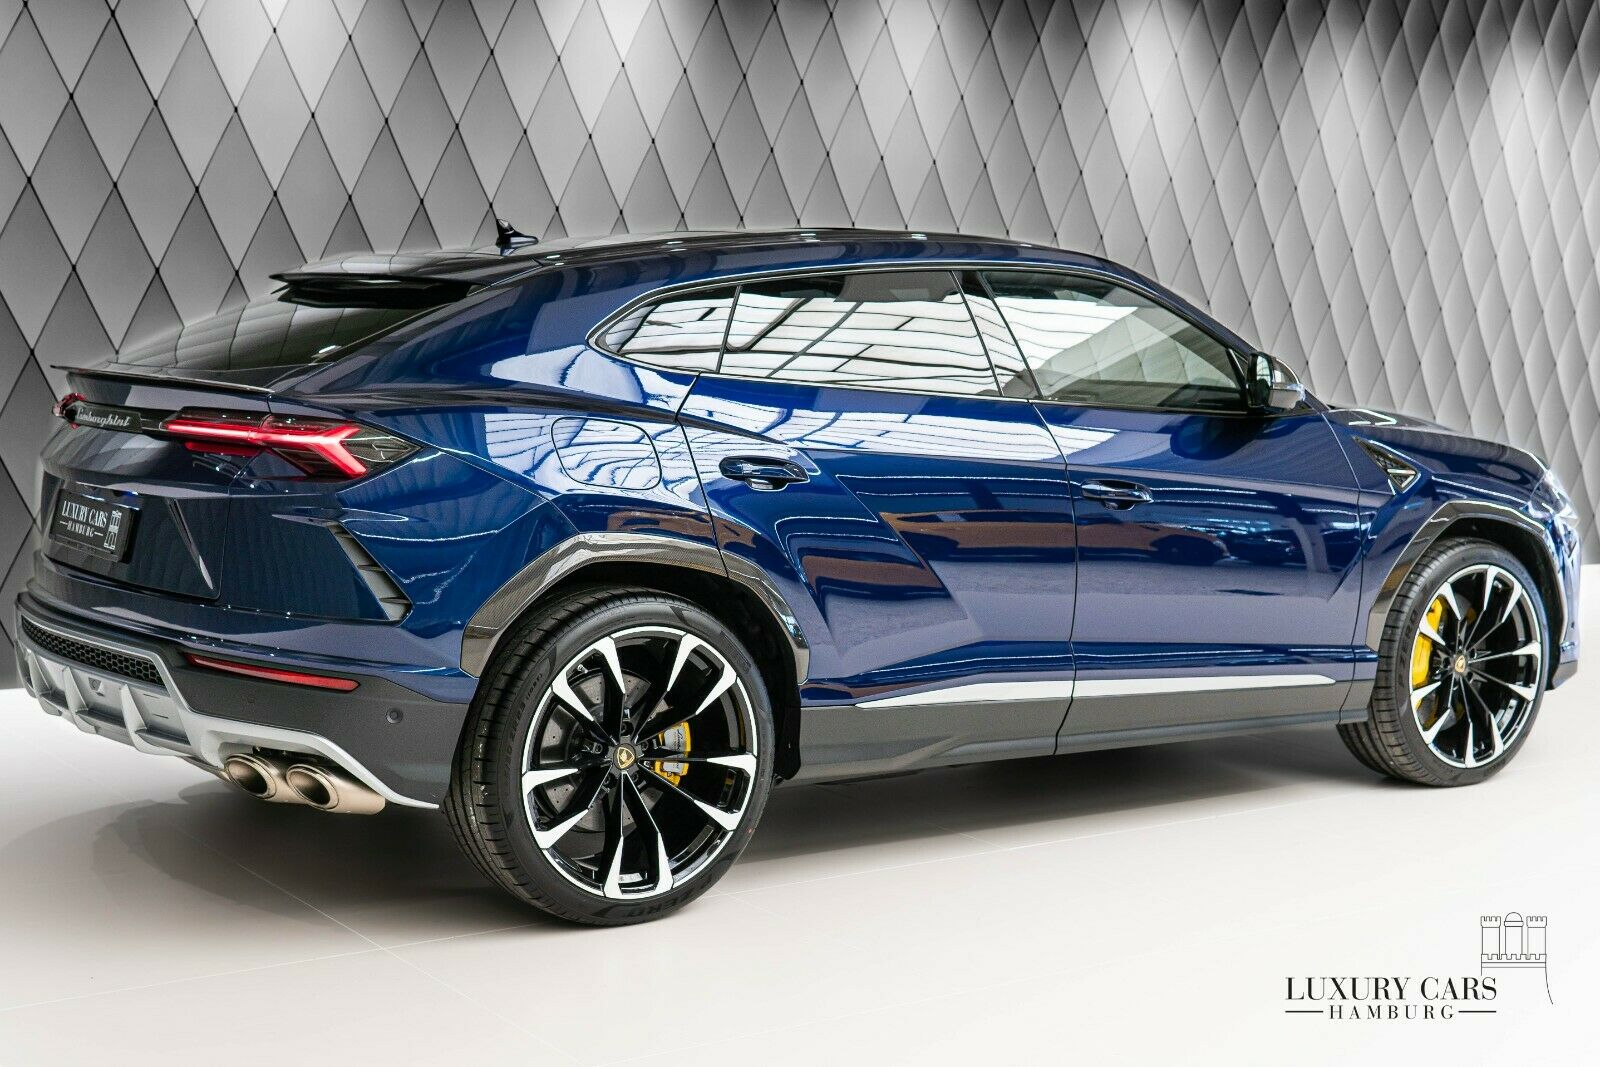 for sale 2020 lamborghini urus luxury cars hamburg germany for sale on luxurypulse for sale 2020 lamborghini urus